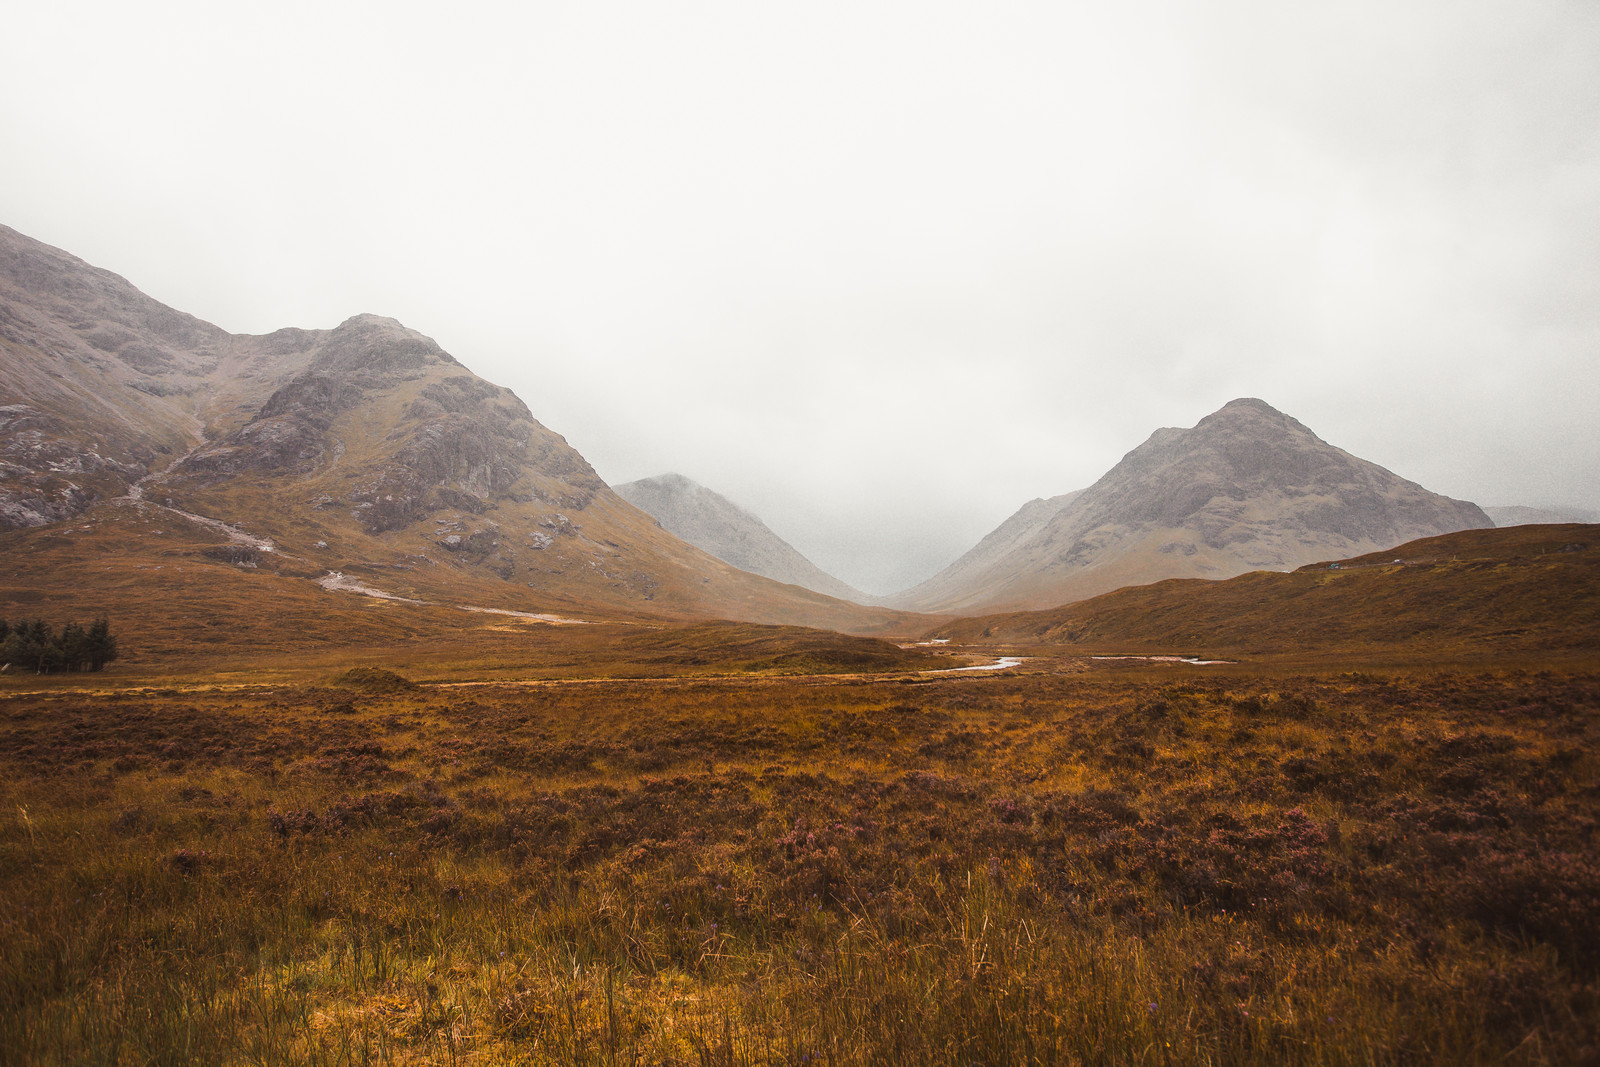 landscape-photography-in-scotland-glen-coe-12